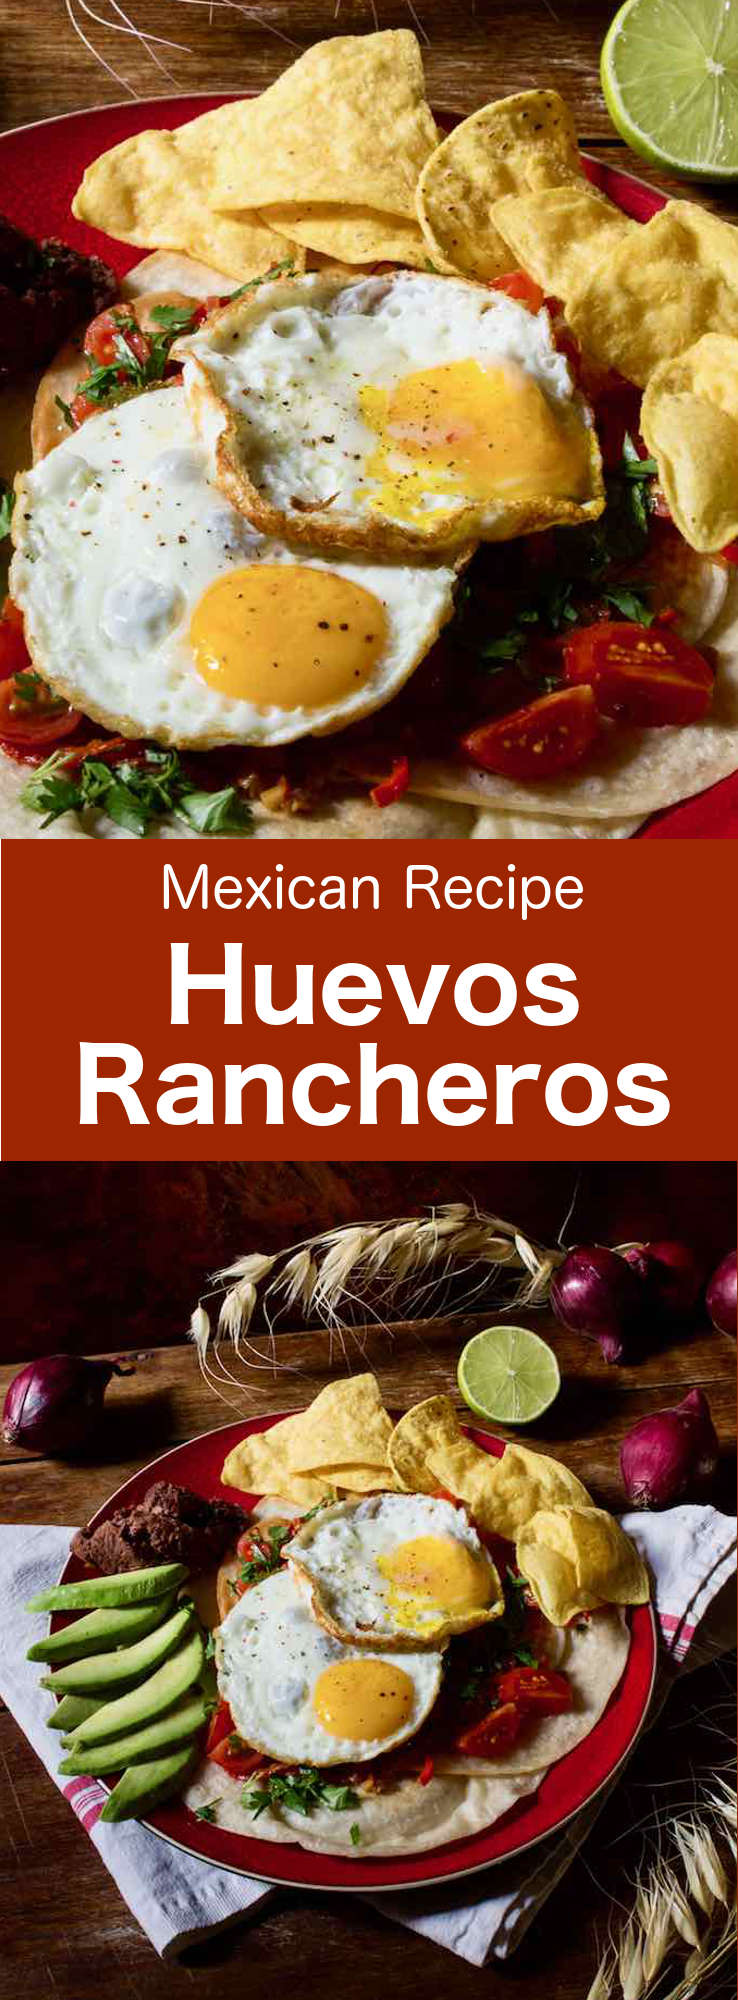 Huevos rancheros or ranch-style eggs are a true Mexican institution and a complete meal with eggs and tomatoes that is mainly served at breakfast. #Mexican #MexicanFood #MexicanCuisine #MexicanRecipe #MexicanBreakfast #MexicanEggs #WorldCuisine #196flavors